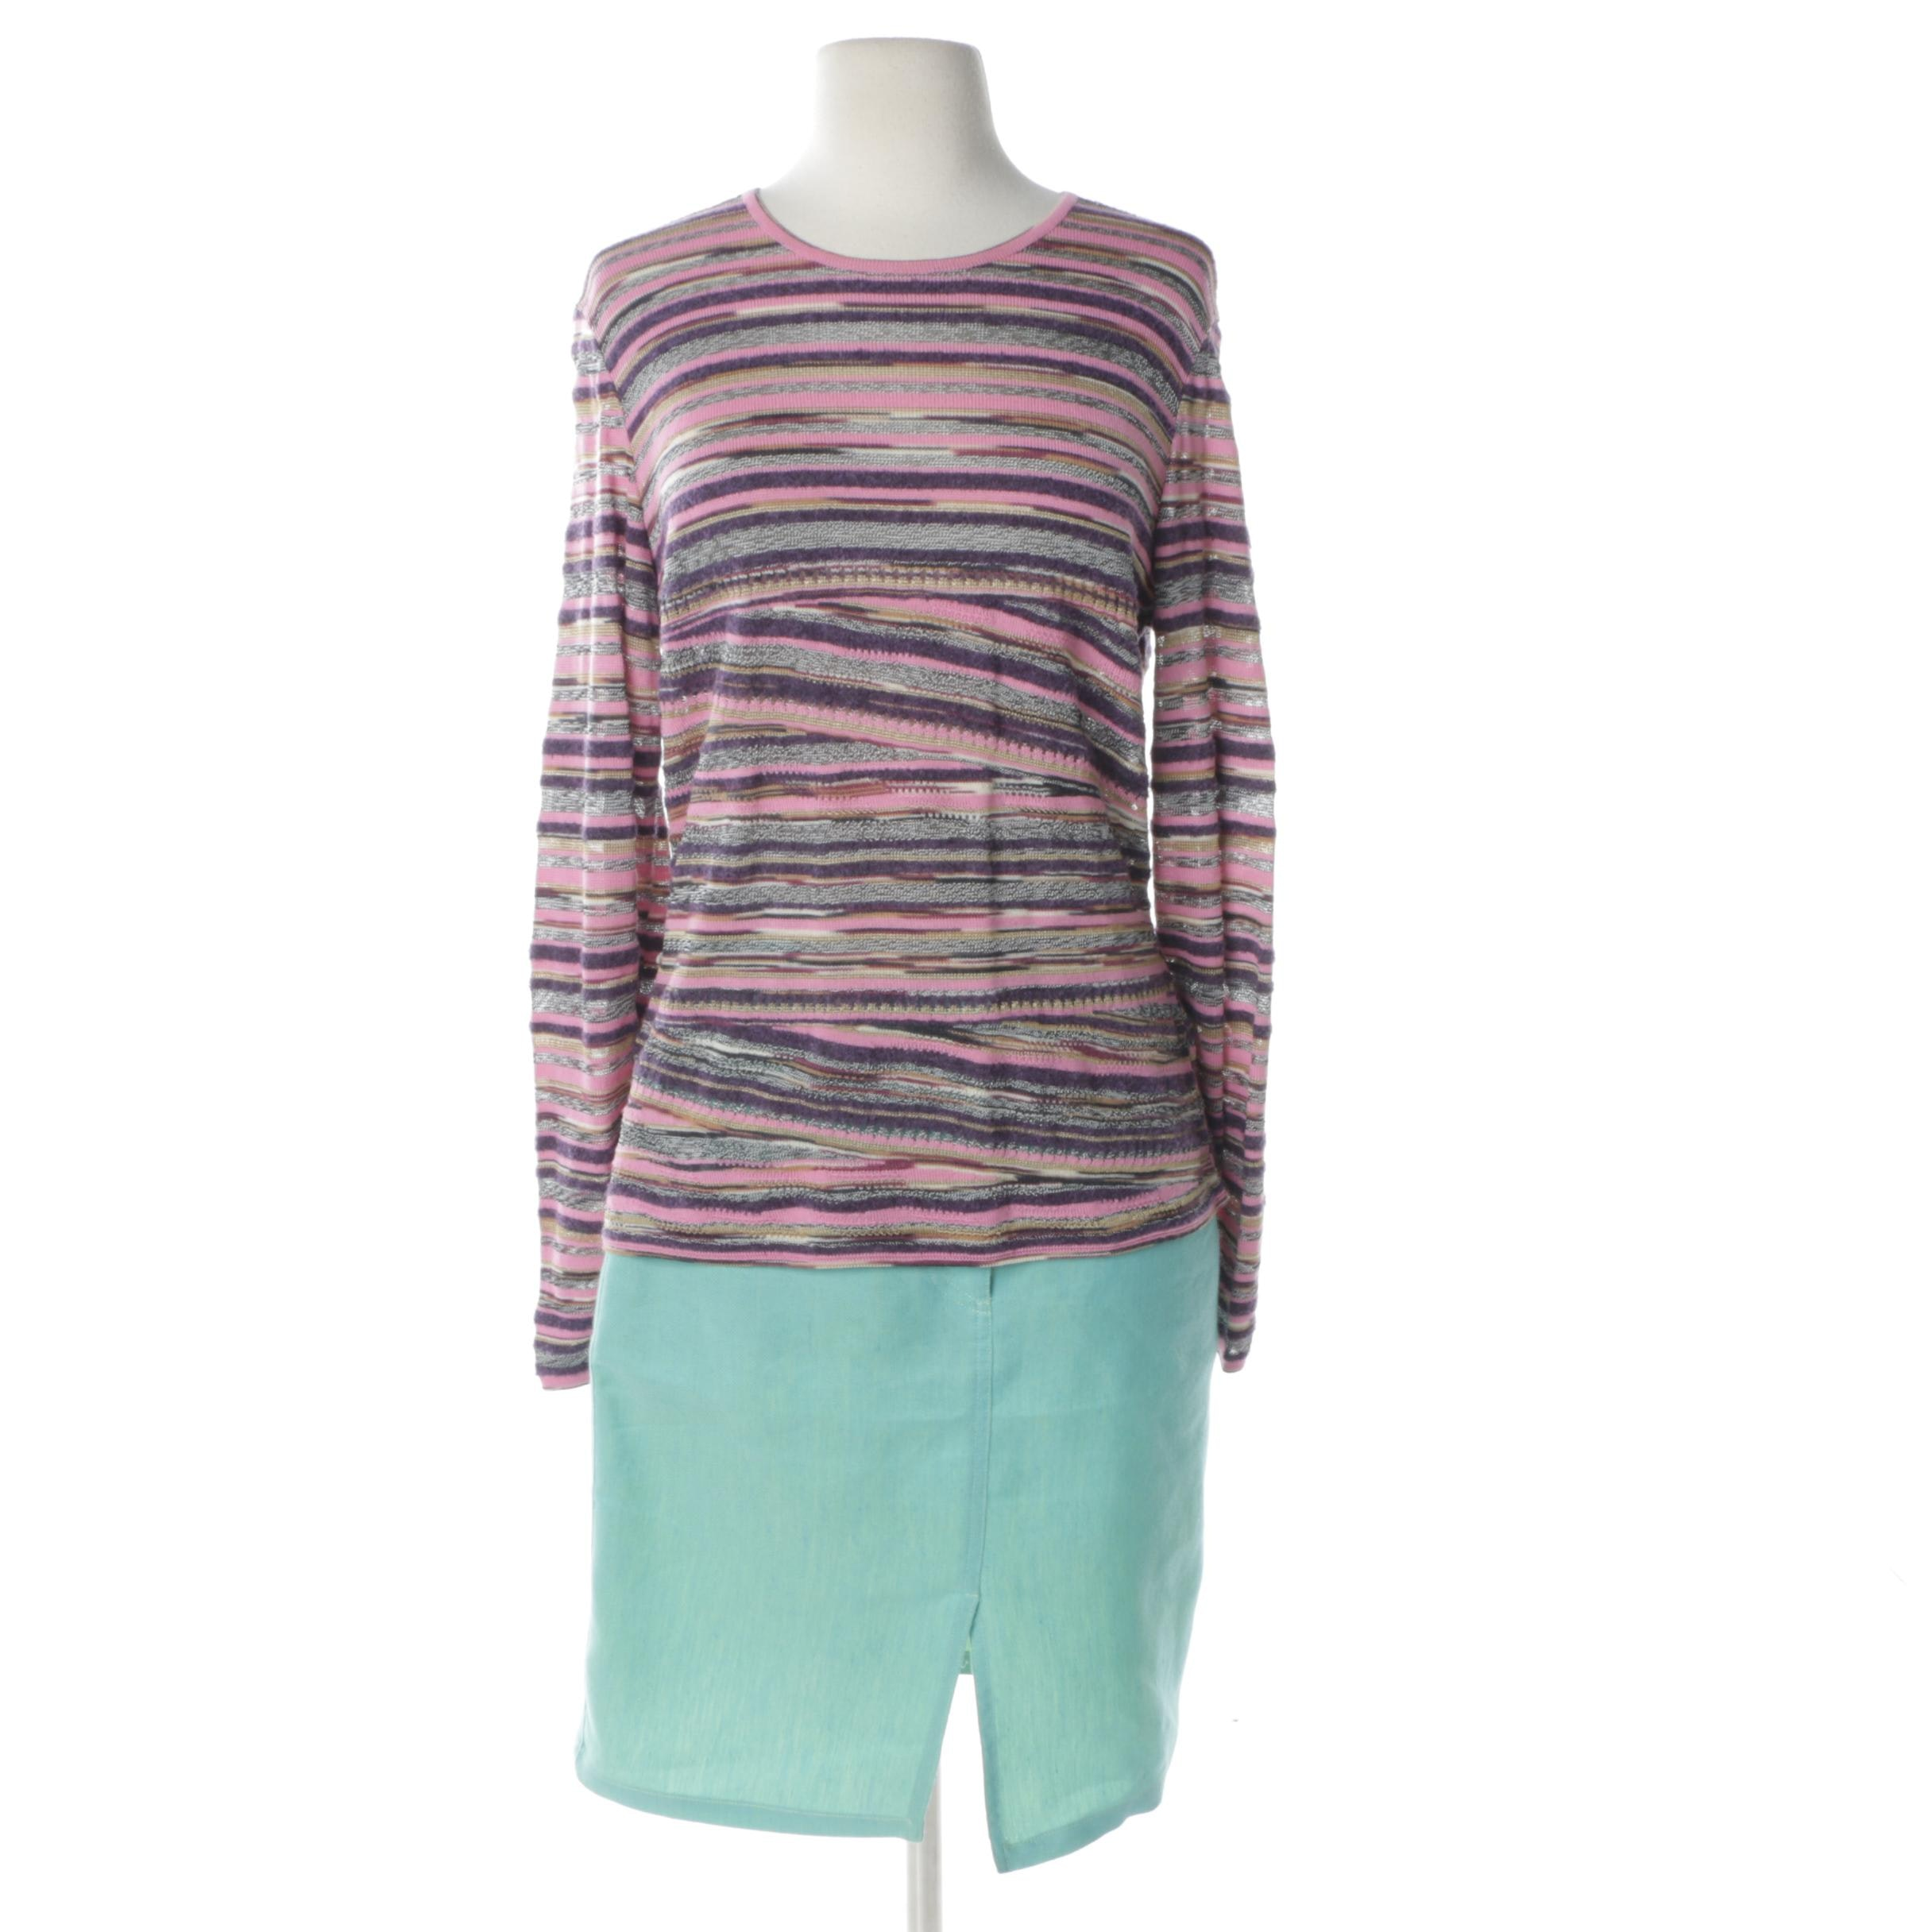 M Missoni Sweater and Skirt